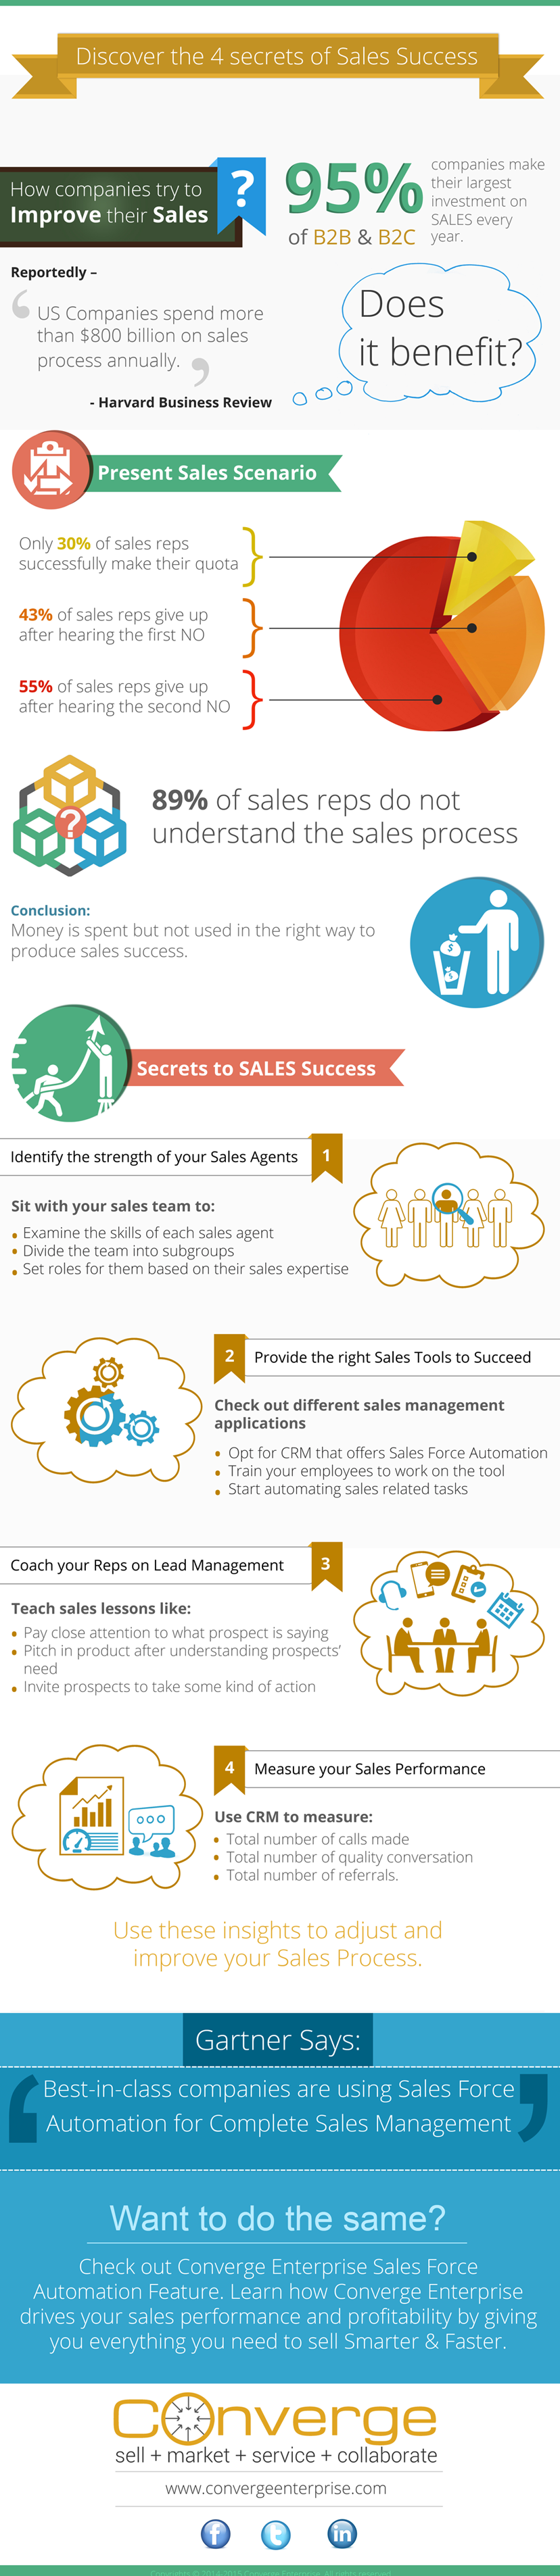 Discover the Four Secret of Sales Success